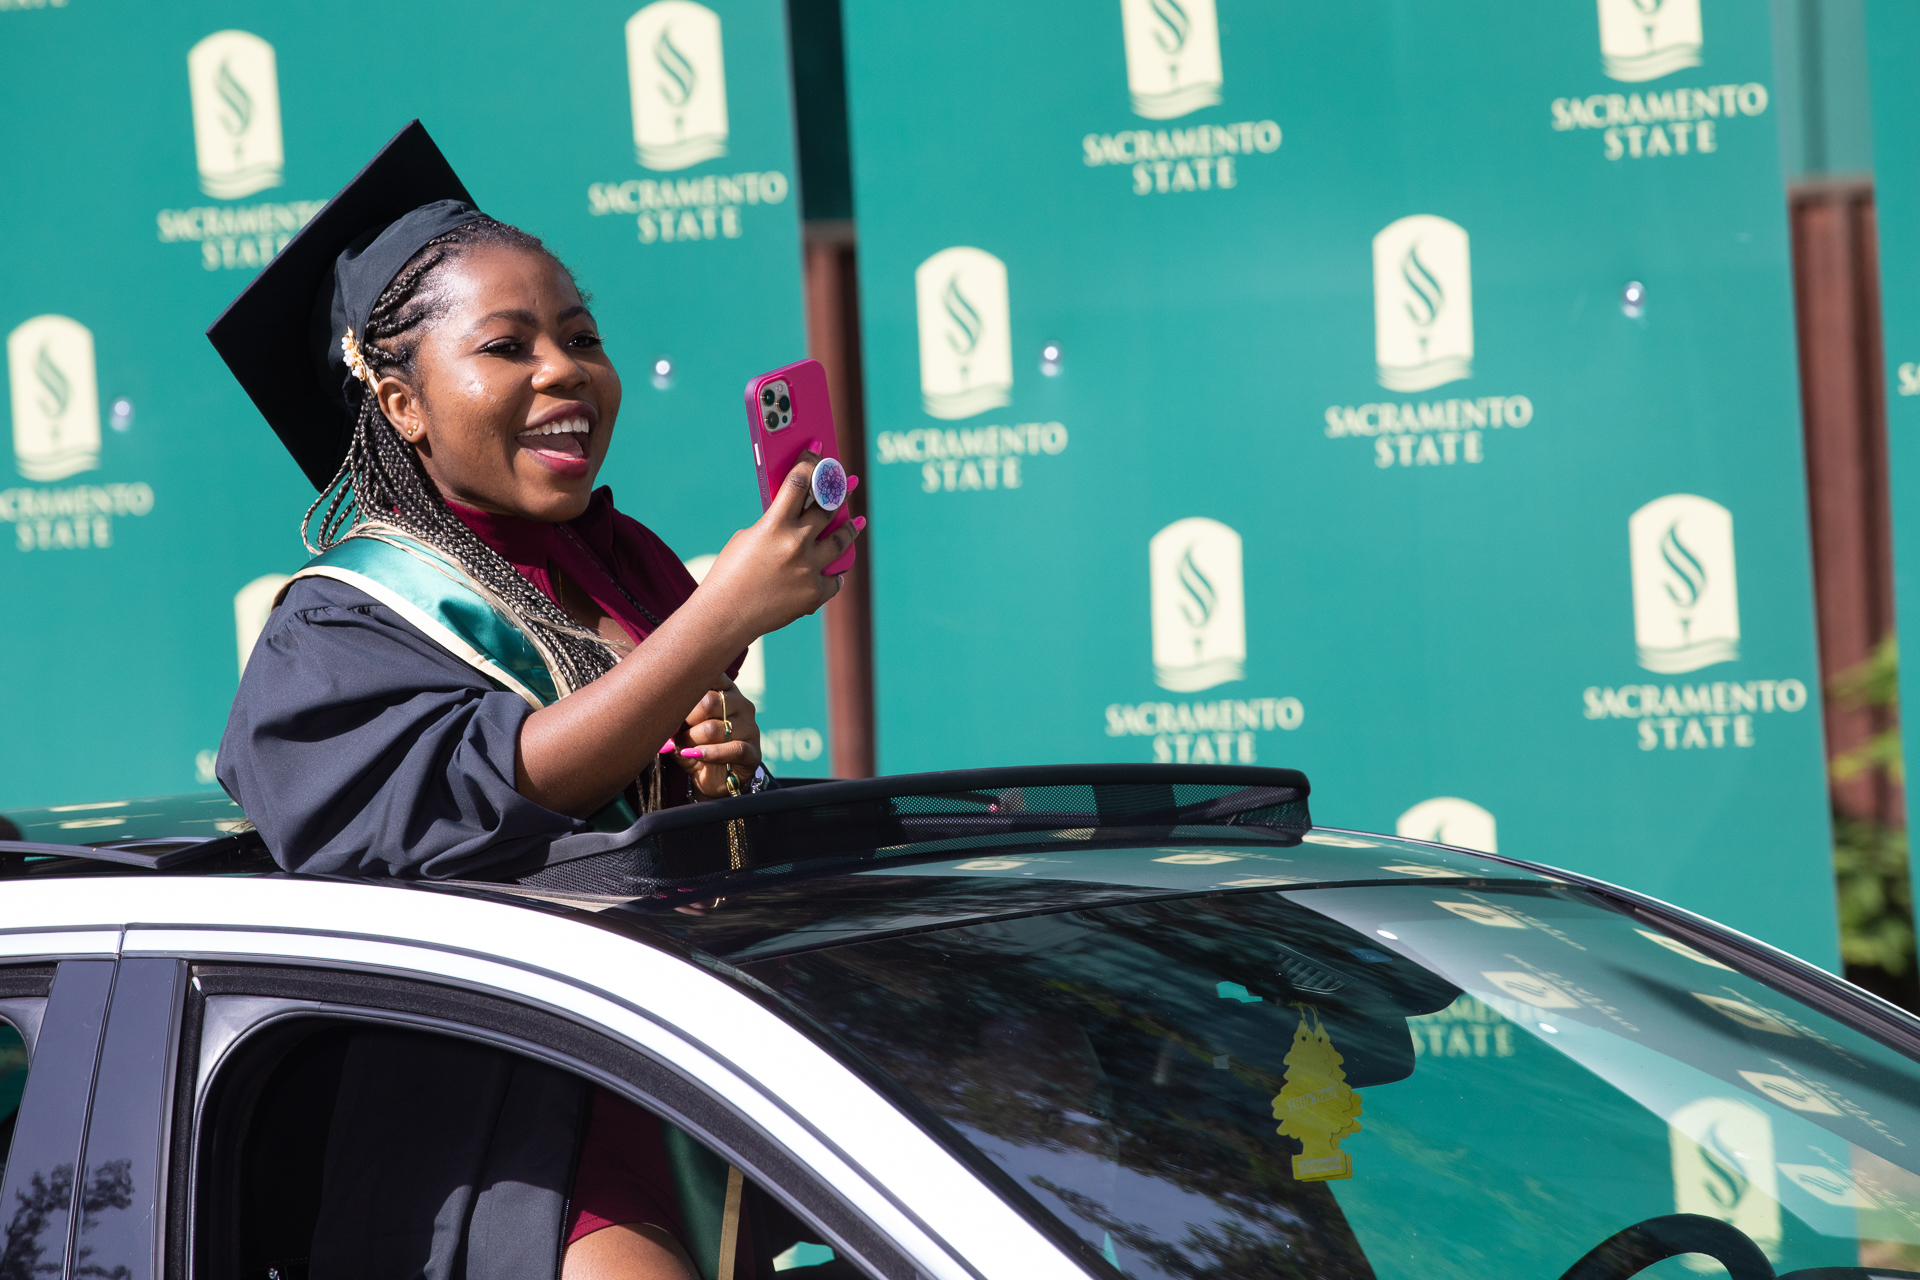 """A Sac State graduate enjoys the experience of the 2021 """"Carmencement"""" ceremony. (Sacramento State/Andrea Price)"""